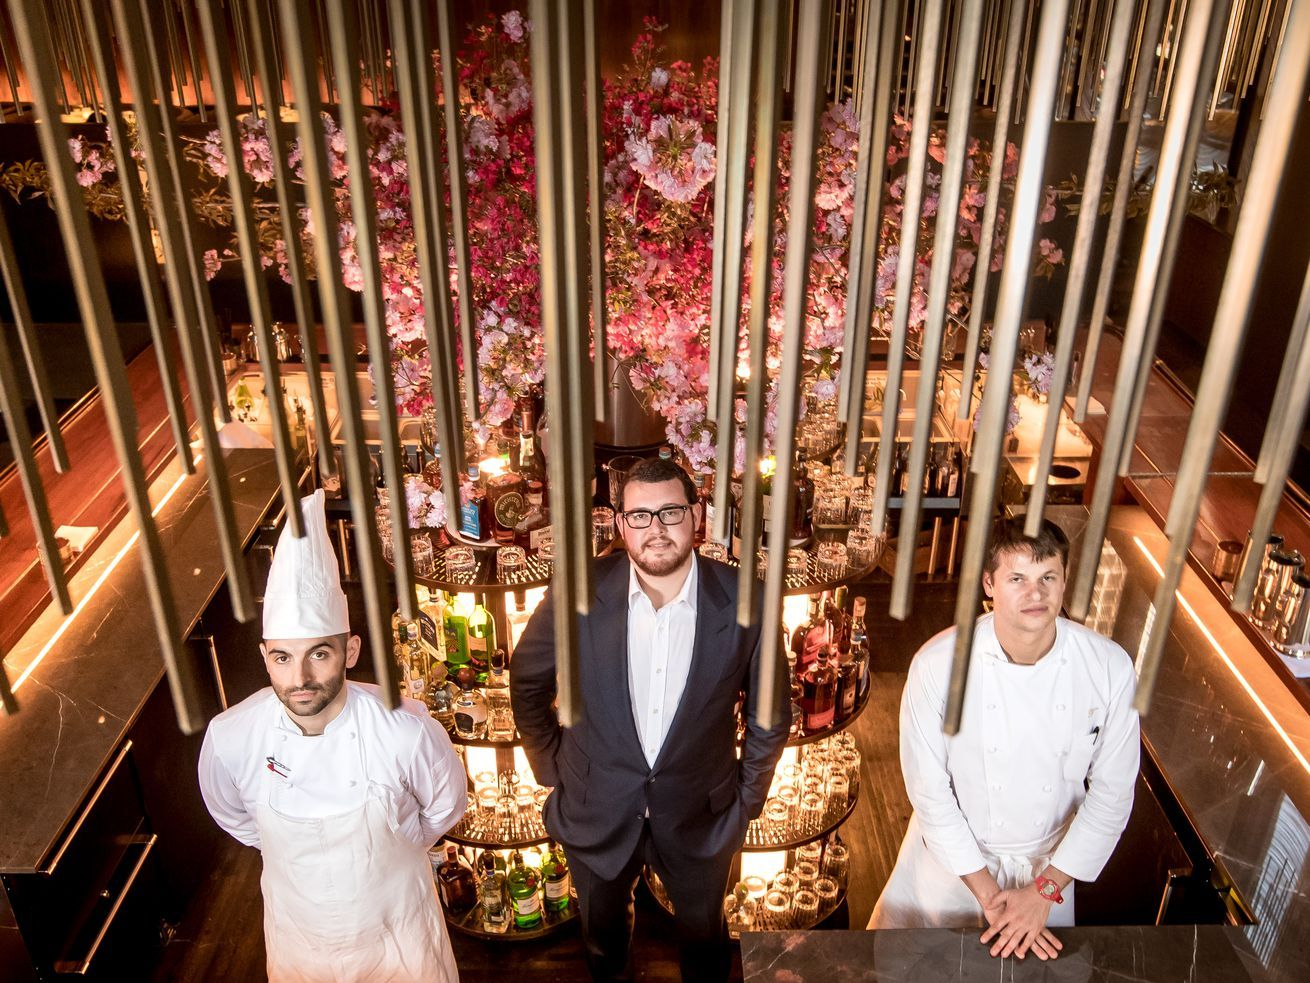 Major Food Groups Defining Restaurant Torrisi Reopens for $25K Private Charity Dinners